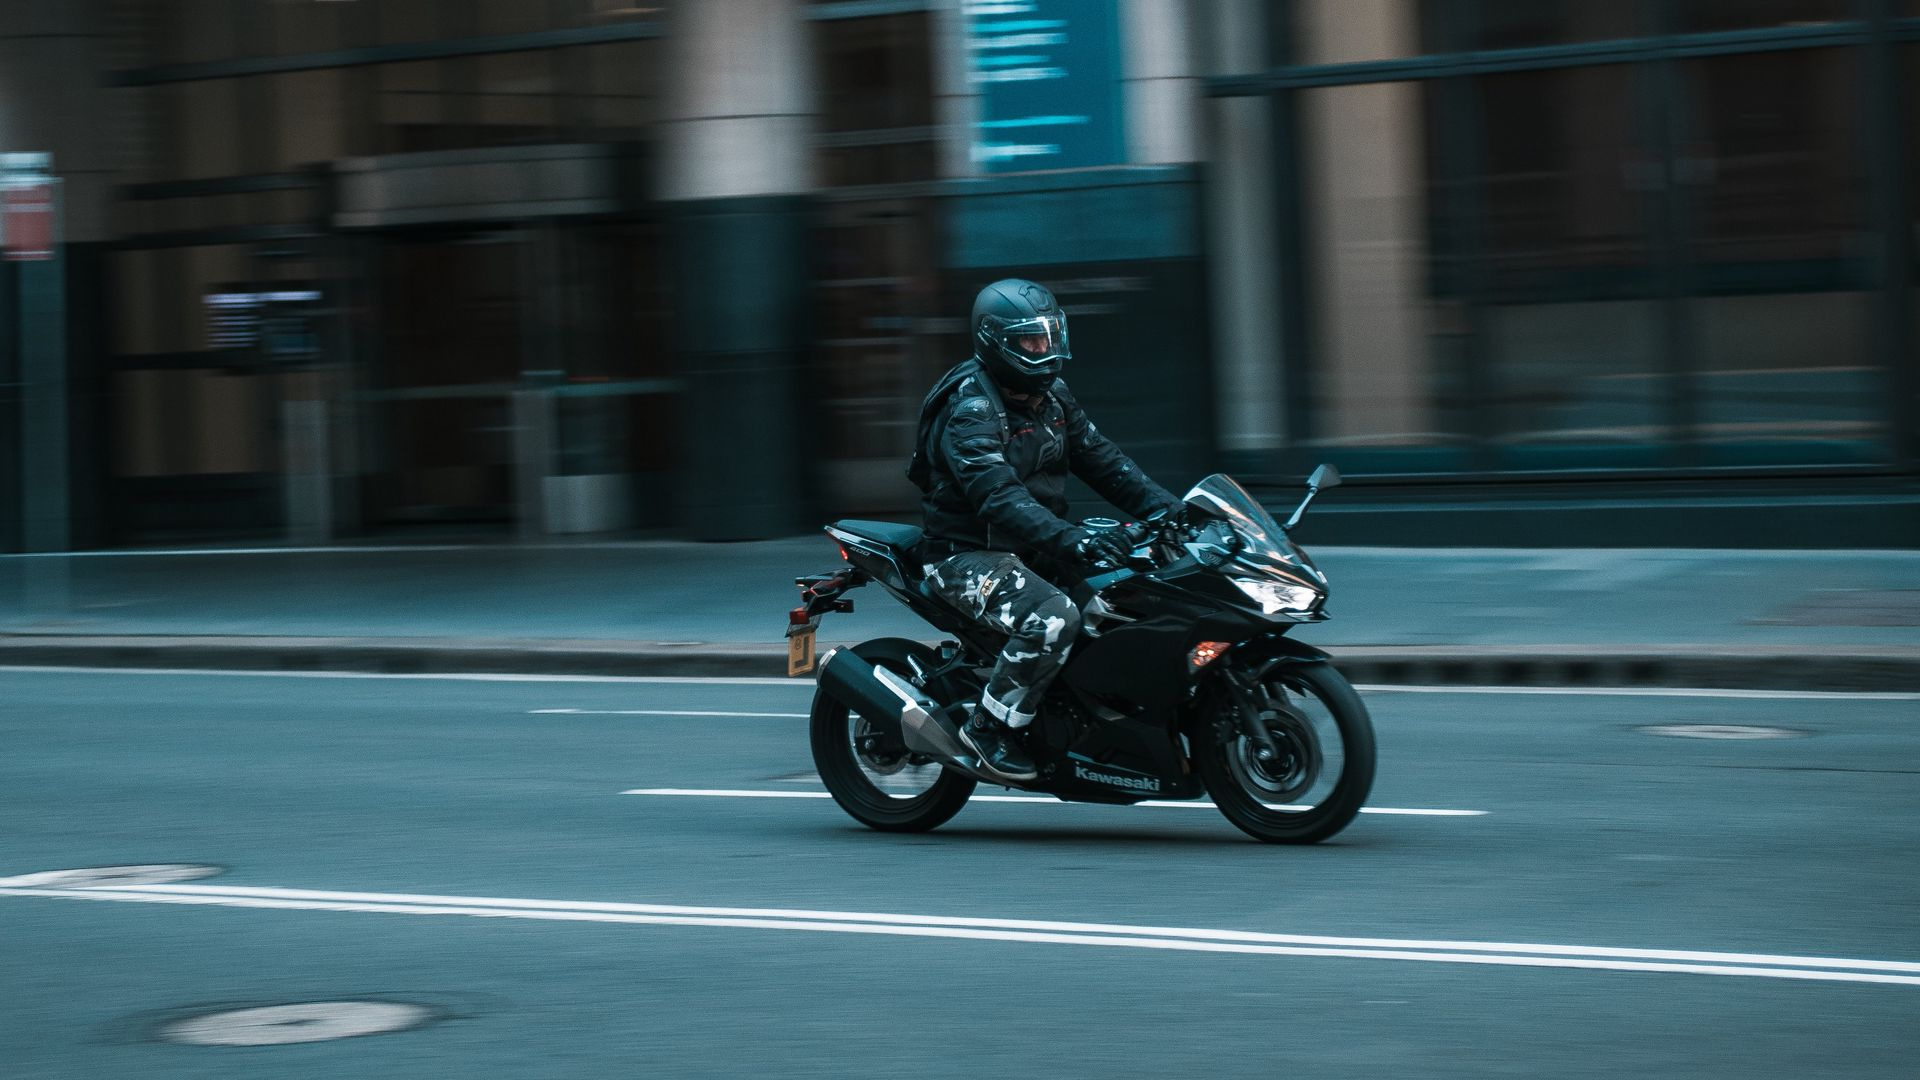 Motorcyclist, Speed, Motorcycle Download Free HD Wallpapers